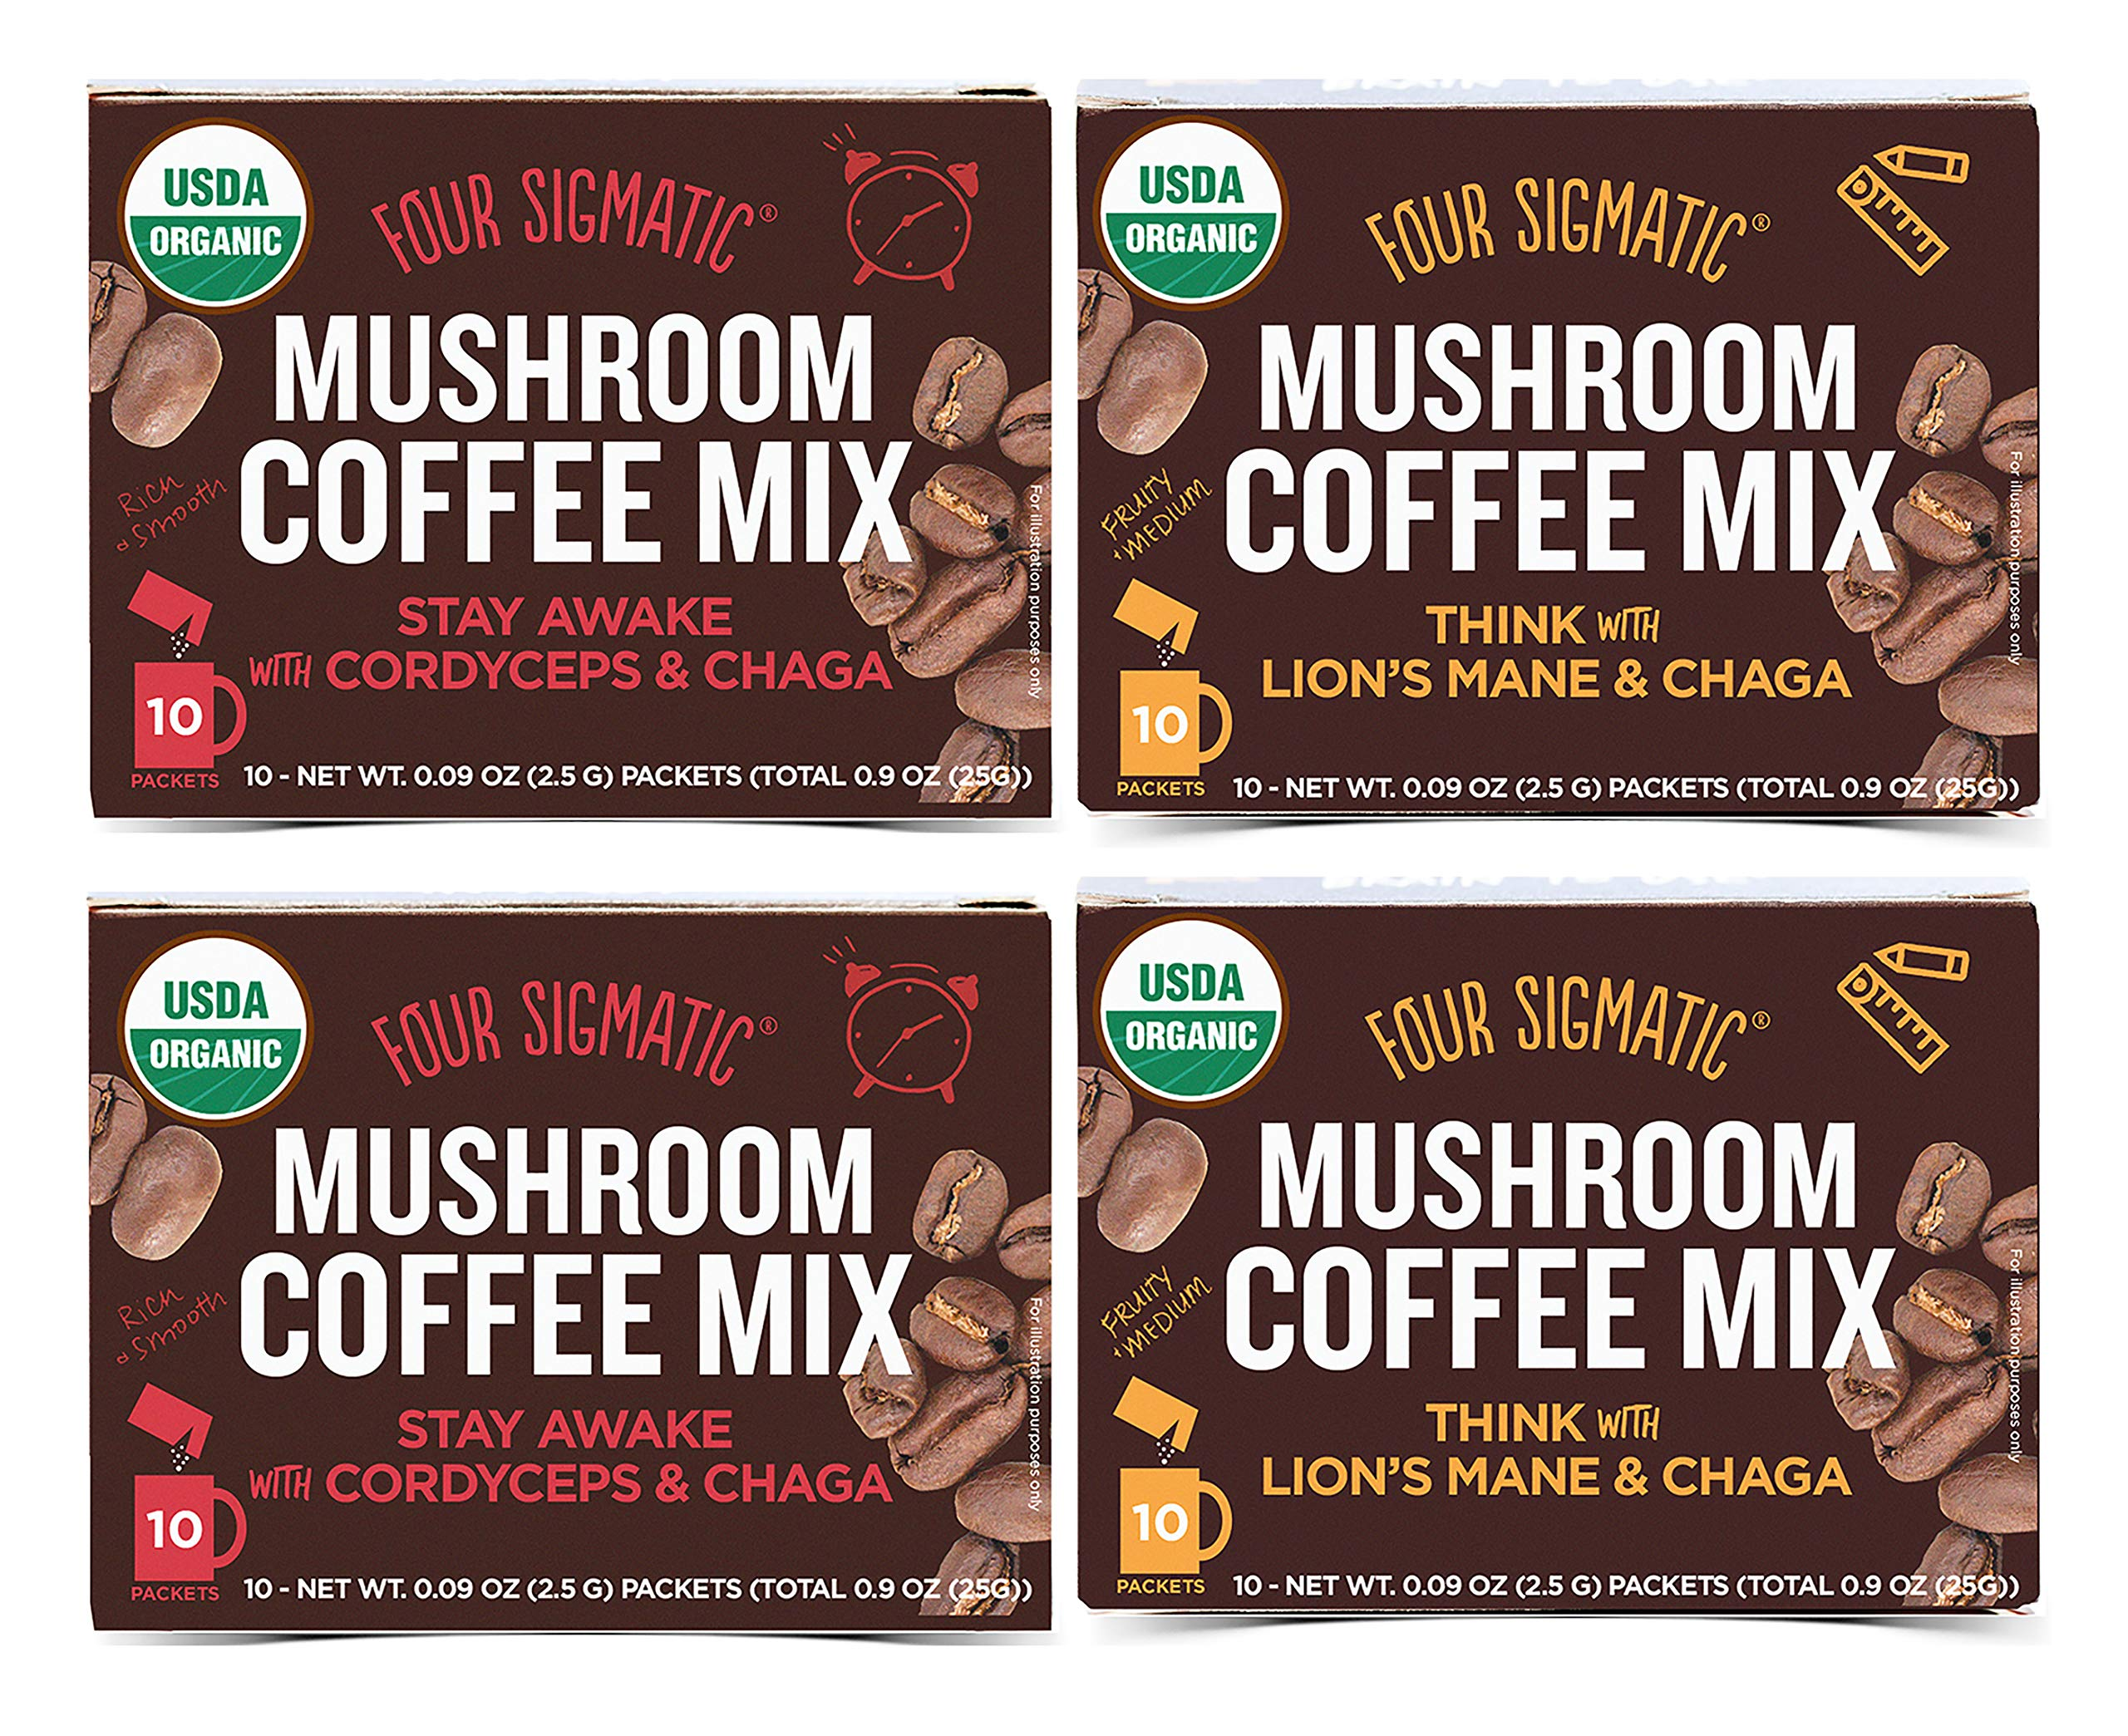 Four Sigmatic Mushroom Coffee Mix Pack of 4 - Lion's Mane and Chaga & Cordyceps and Chaga - 10 Packets Per Box by Four Sigmatic